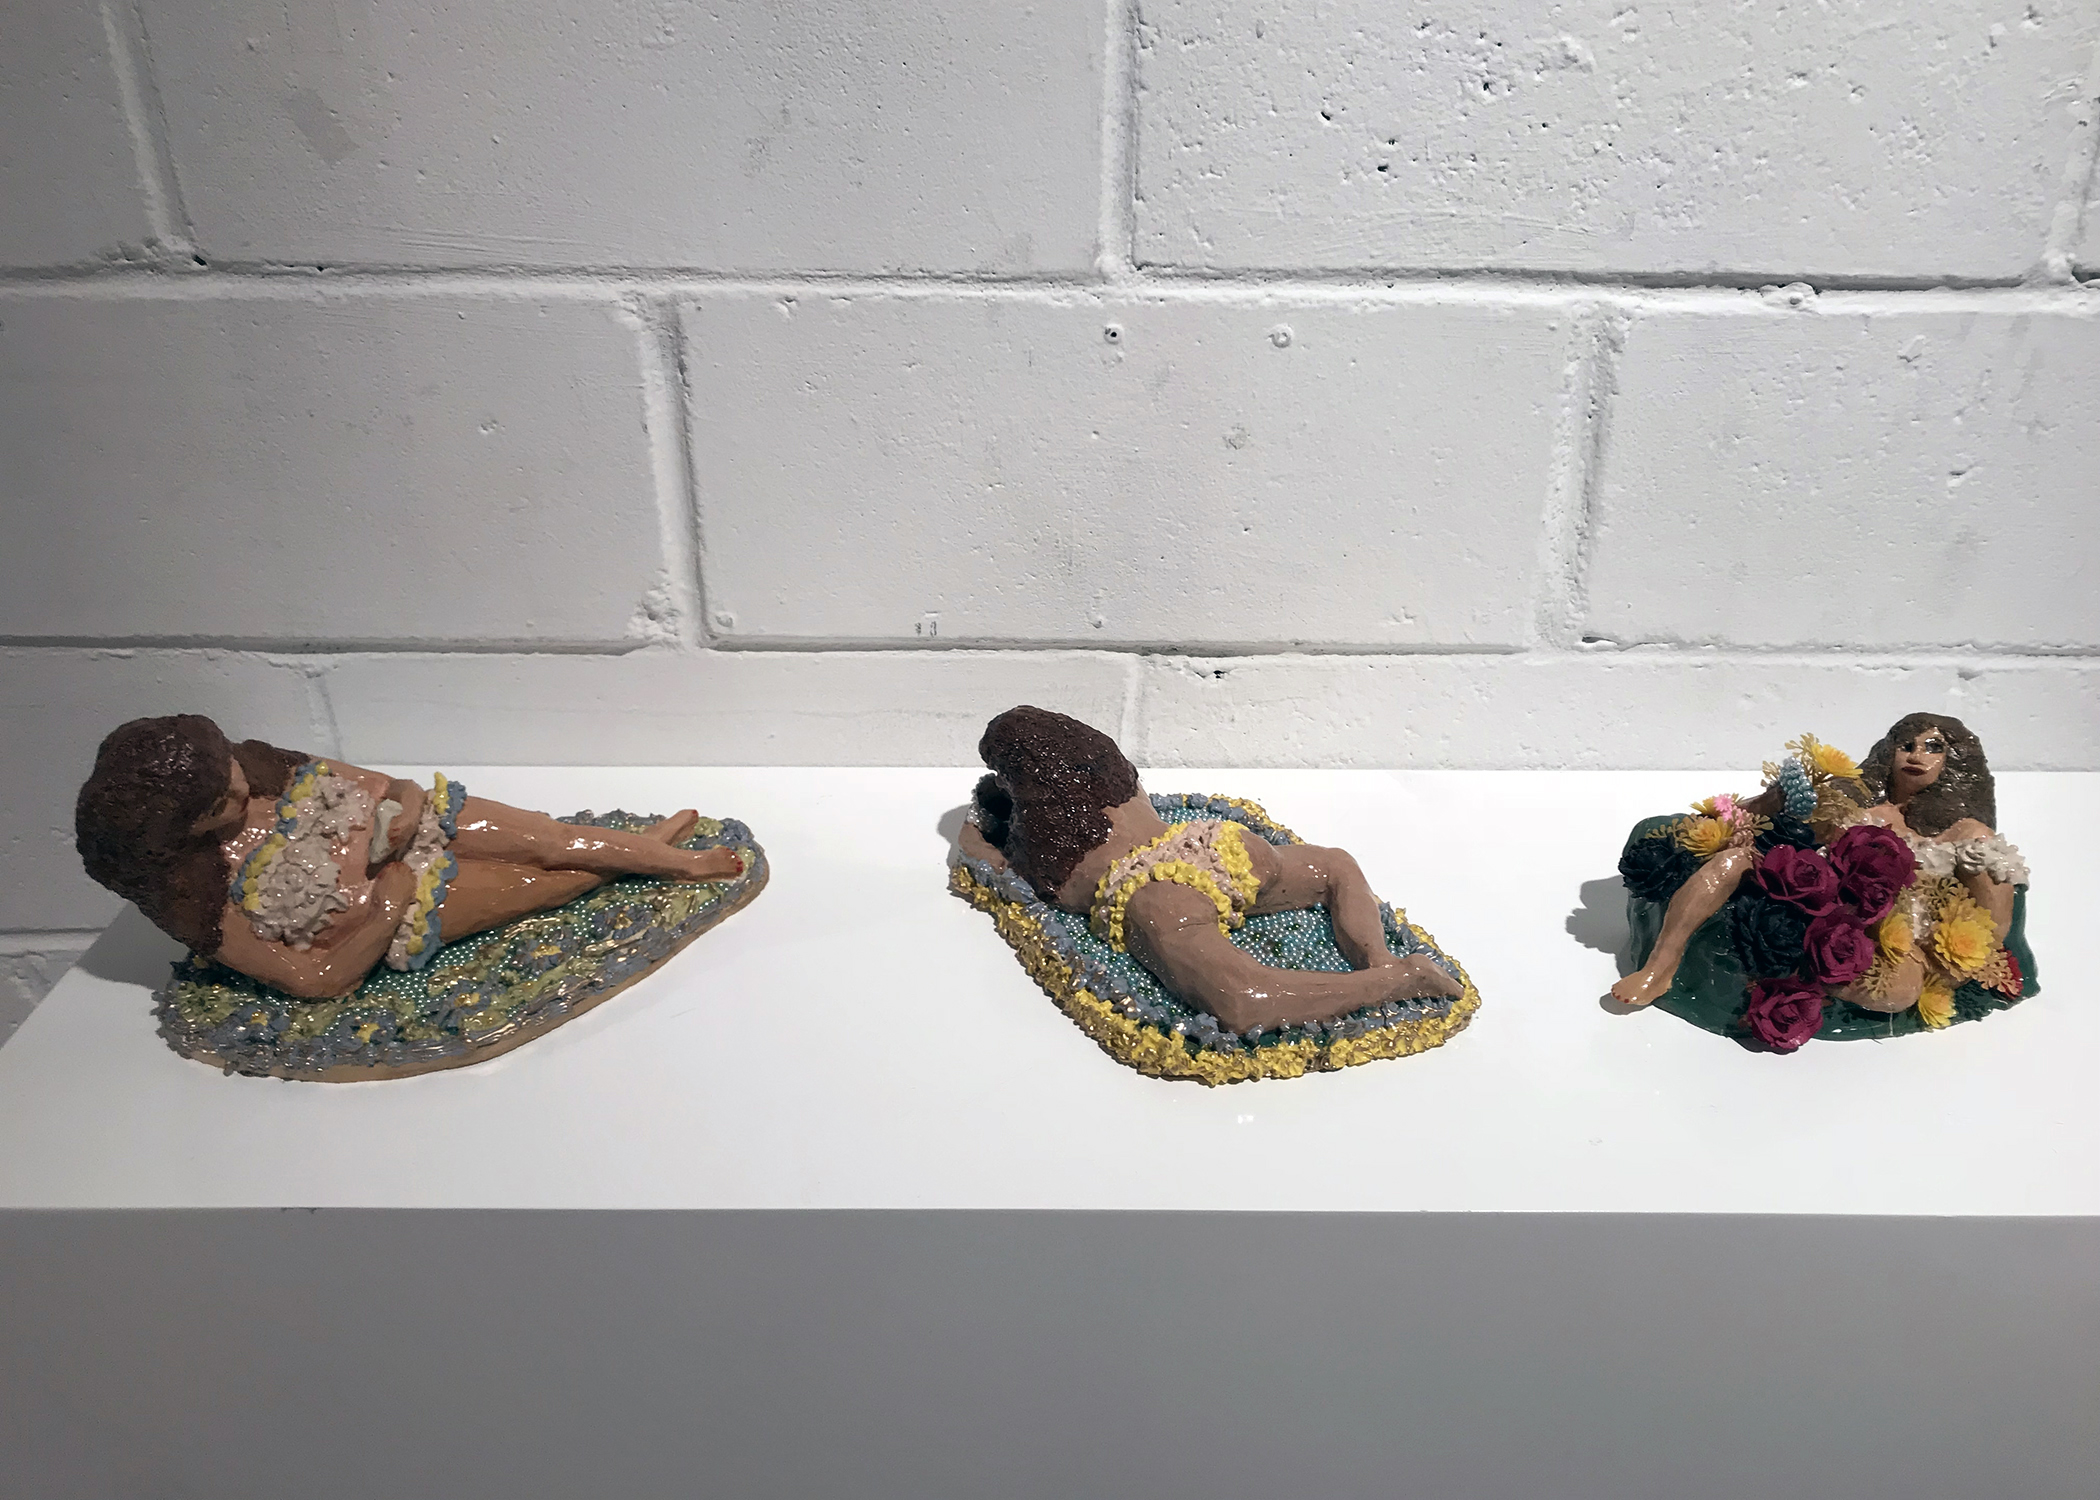 New self-portraits in clay: Pereza De Orion/ Orion's Laziness, Buscando La Perez/ In Search of Laziness, and ¡Como Pasa El Tiempo Buscando La Pereza!/ How Time Flies When In Search for Laziness.